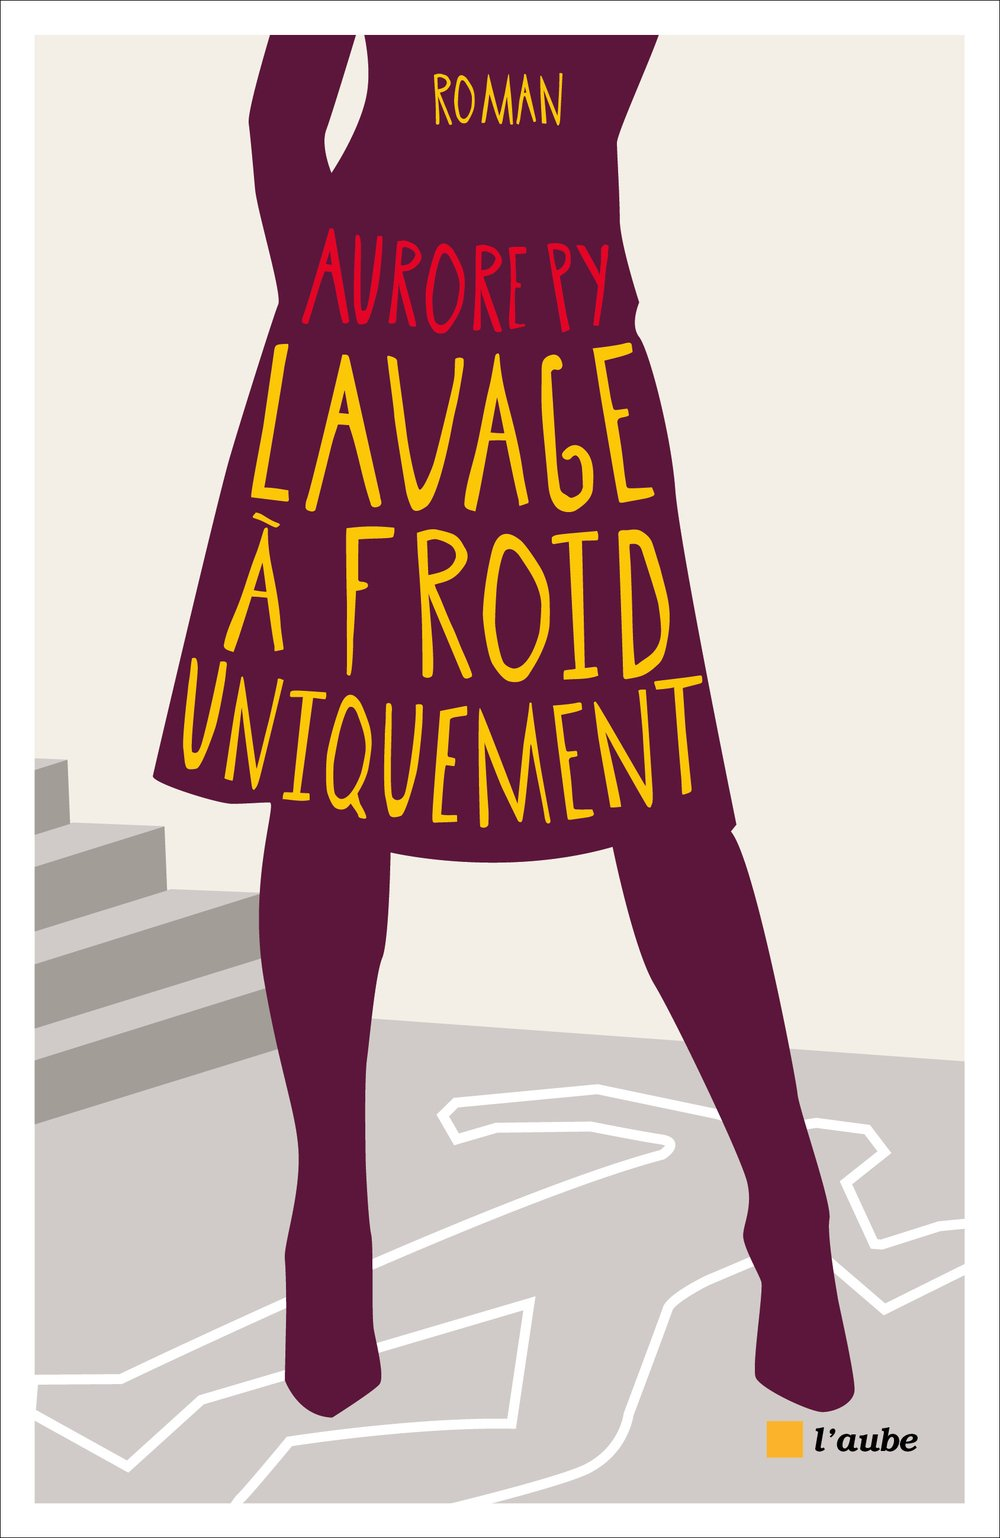 http://www.inmybookworld.com/2017/04/lavage-froid-uniquement-daurore-py-aux.html